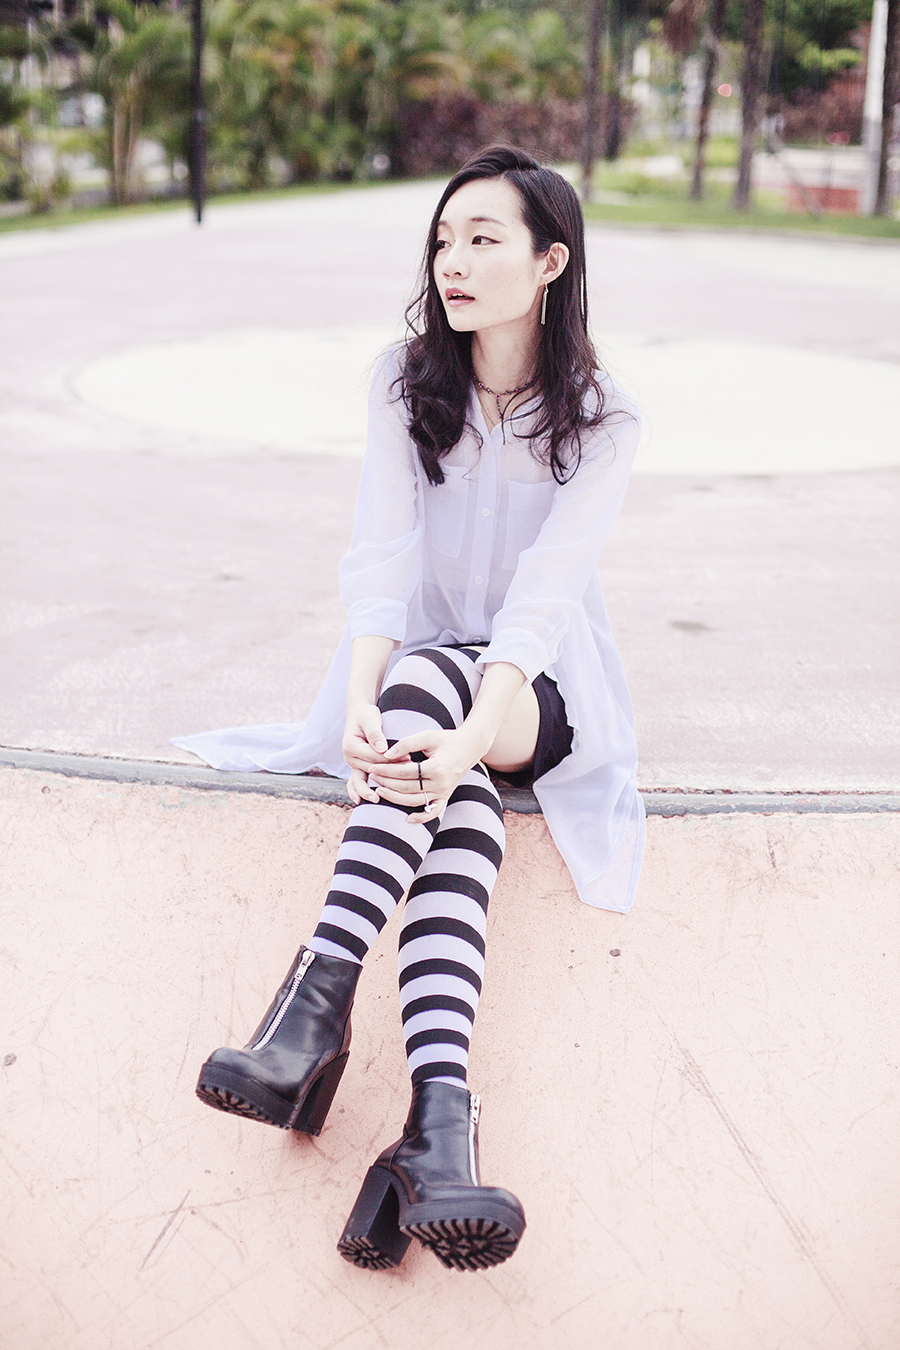 Monochrome ootd: M)phosis white shirt, Forever 21 black skirt, We Love Colors b&w striped thigh high stockings, Rubi black platform boots, Paris Kids rose necklace.